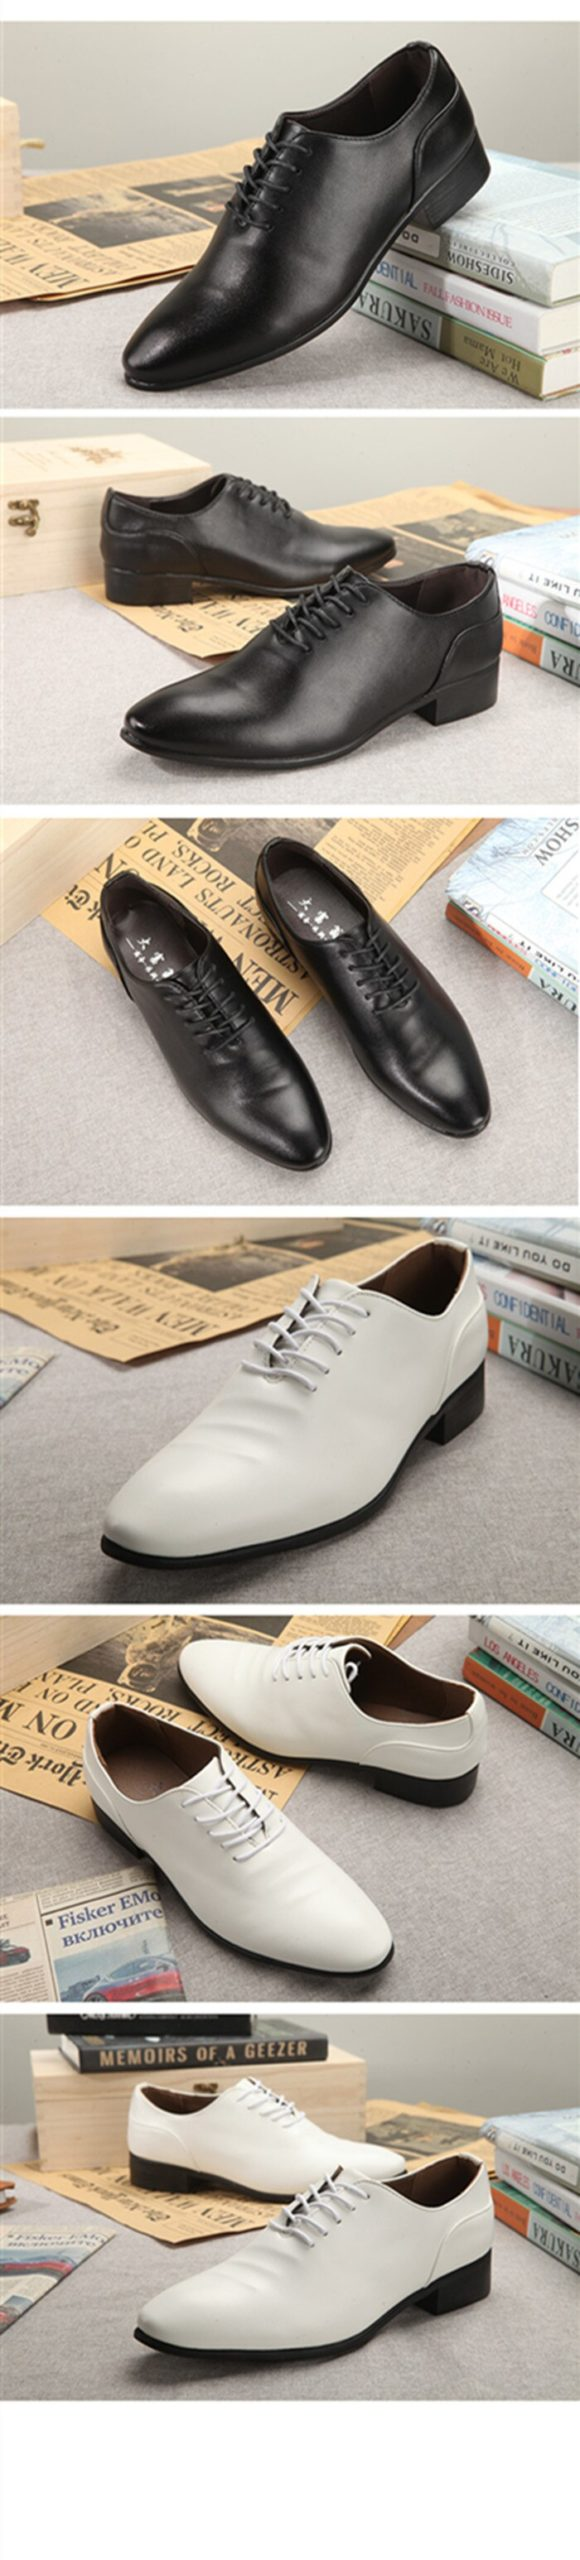 2020 New Patent Leather Men's Dress Shoes Handmade Office Business Wedding Blue Black Luxury Lace Up Formal Oxfords Mens Shoes